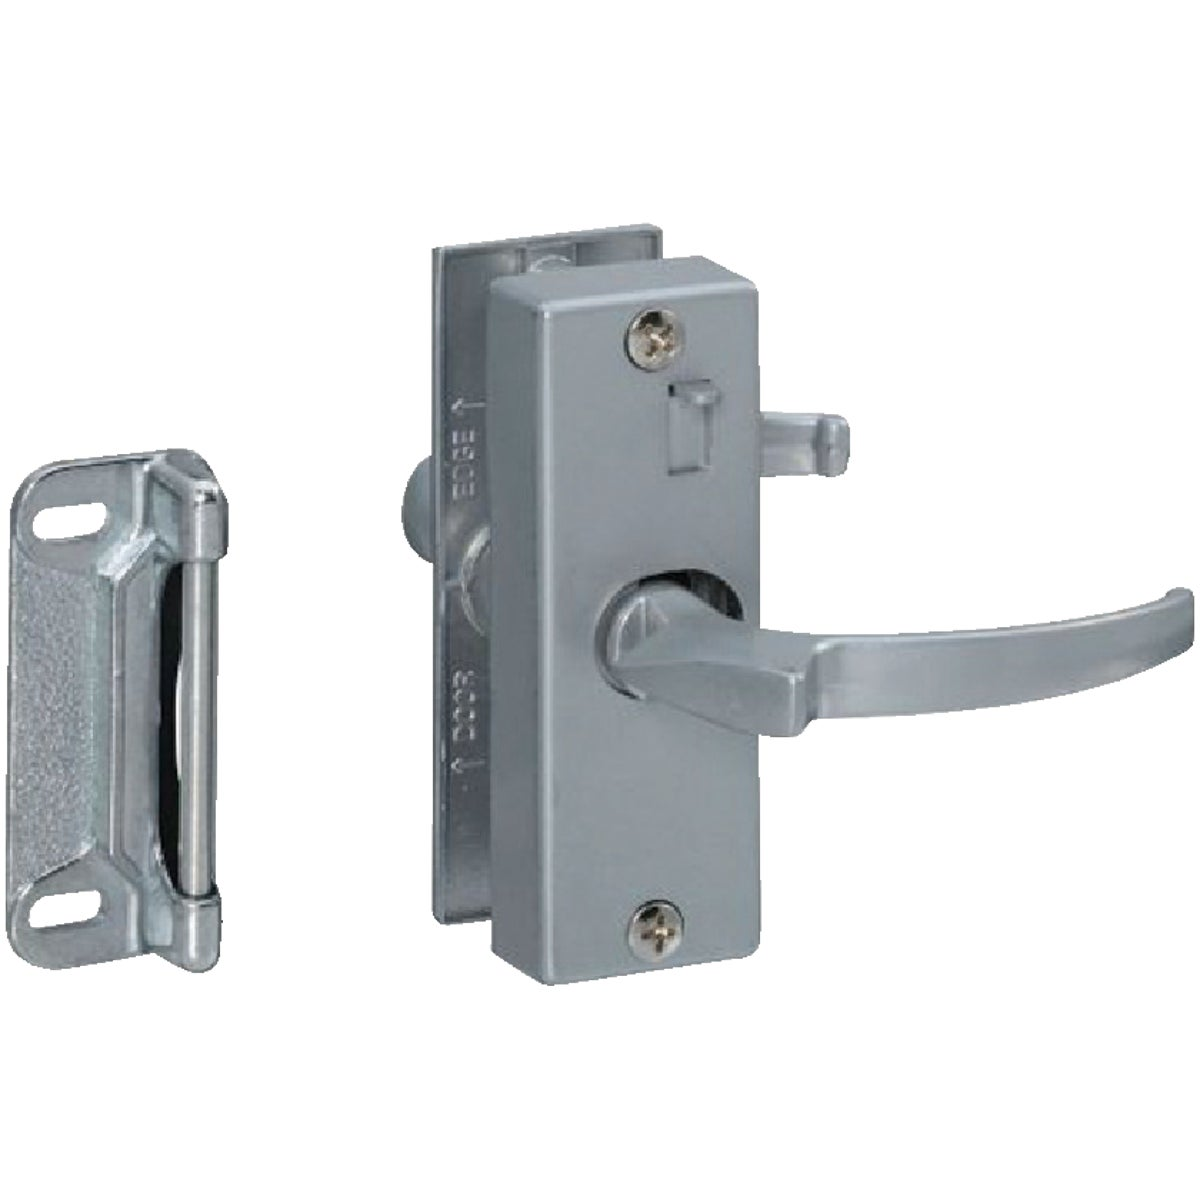 Push-Pull Latch